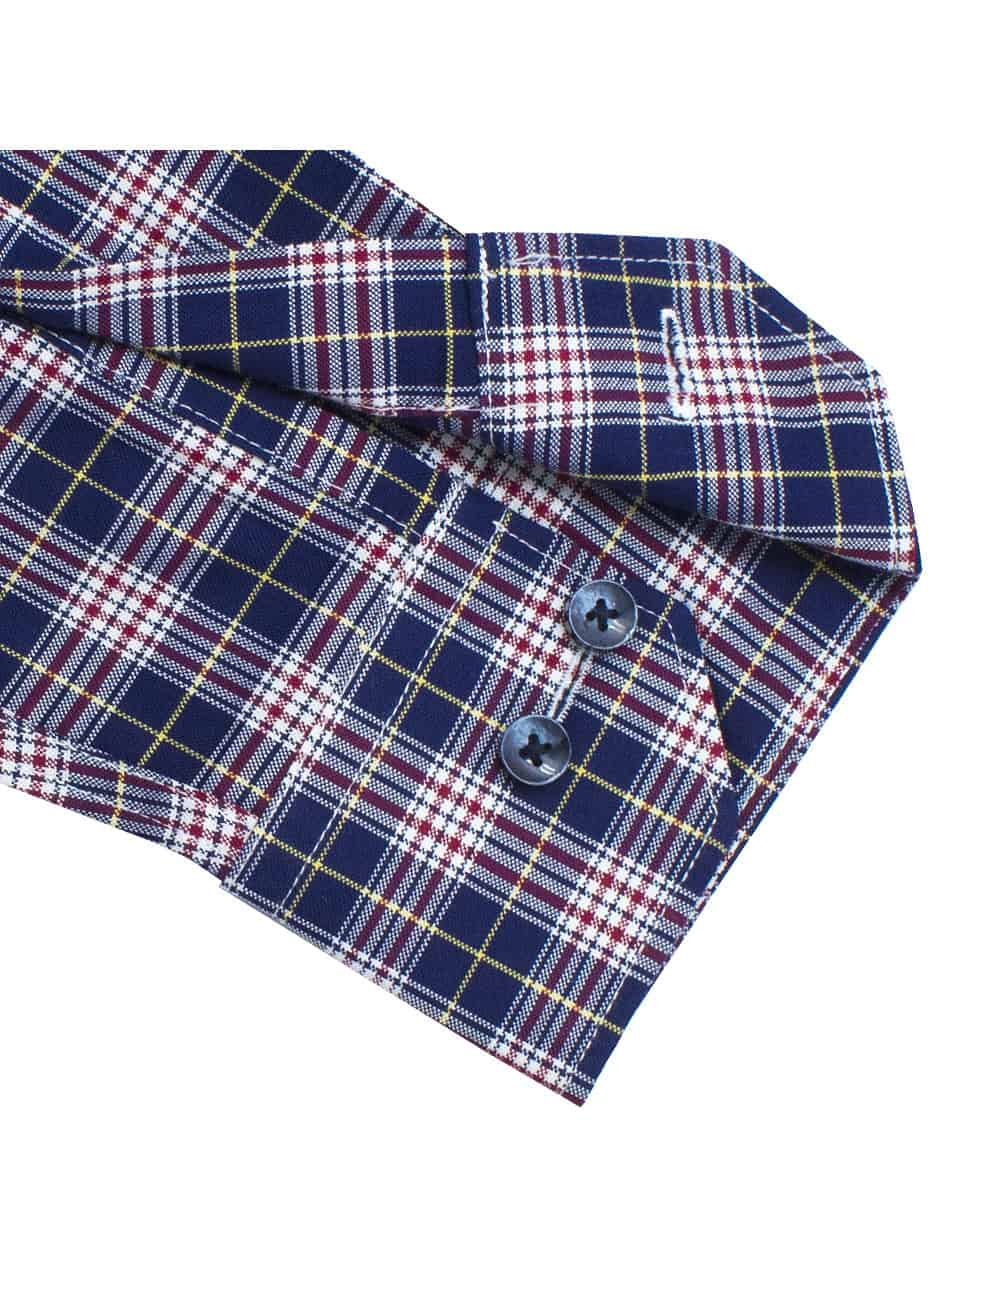 Tailored Fit 100% Premium Cotton Navy and Red Checks Long Sleeve Single Cuff Shirt TF2A5.11